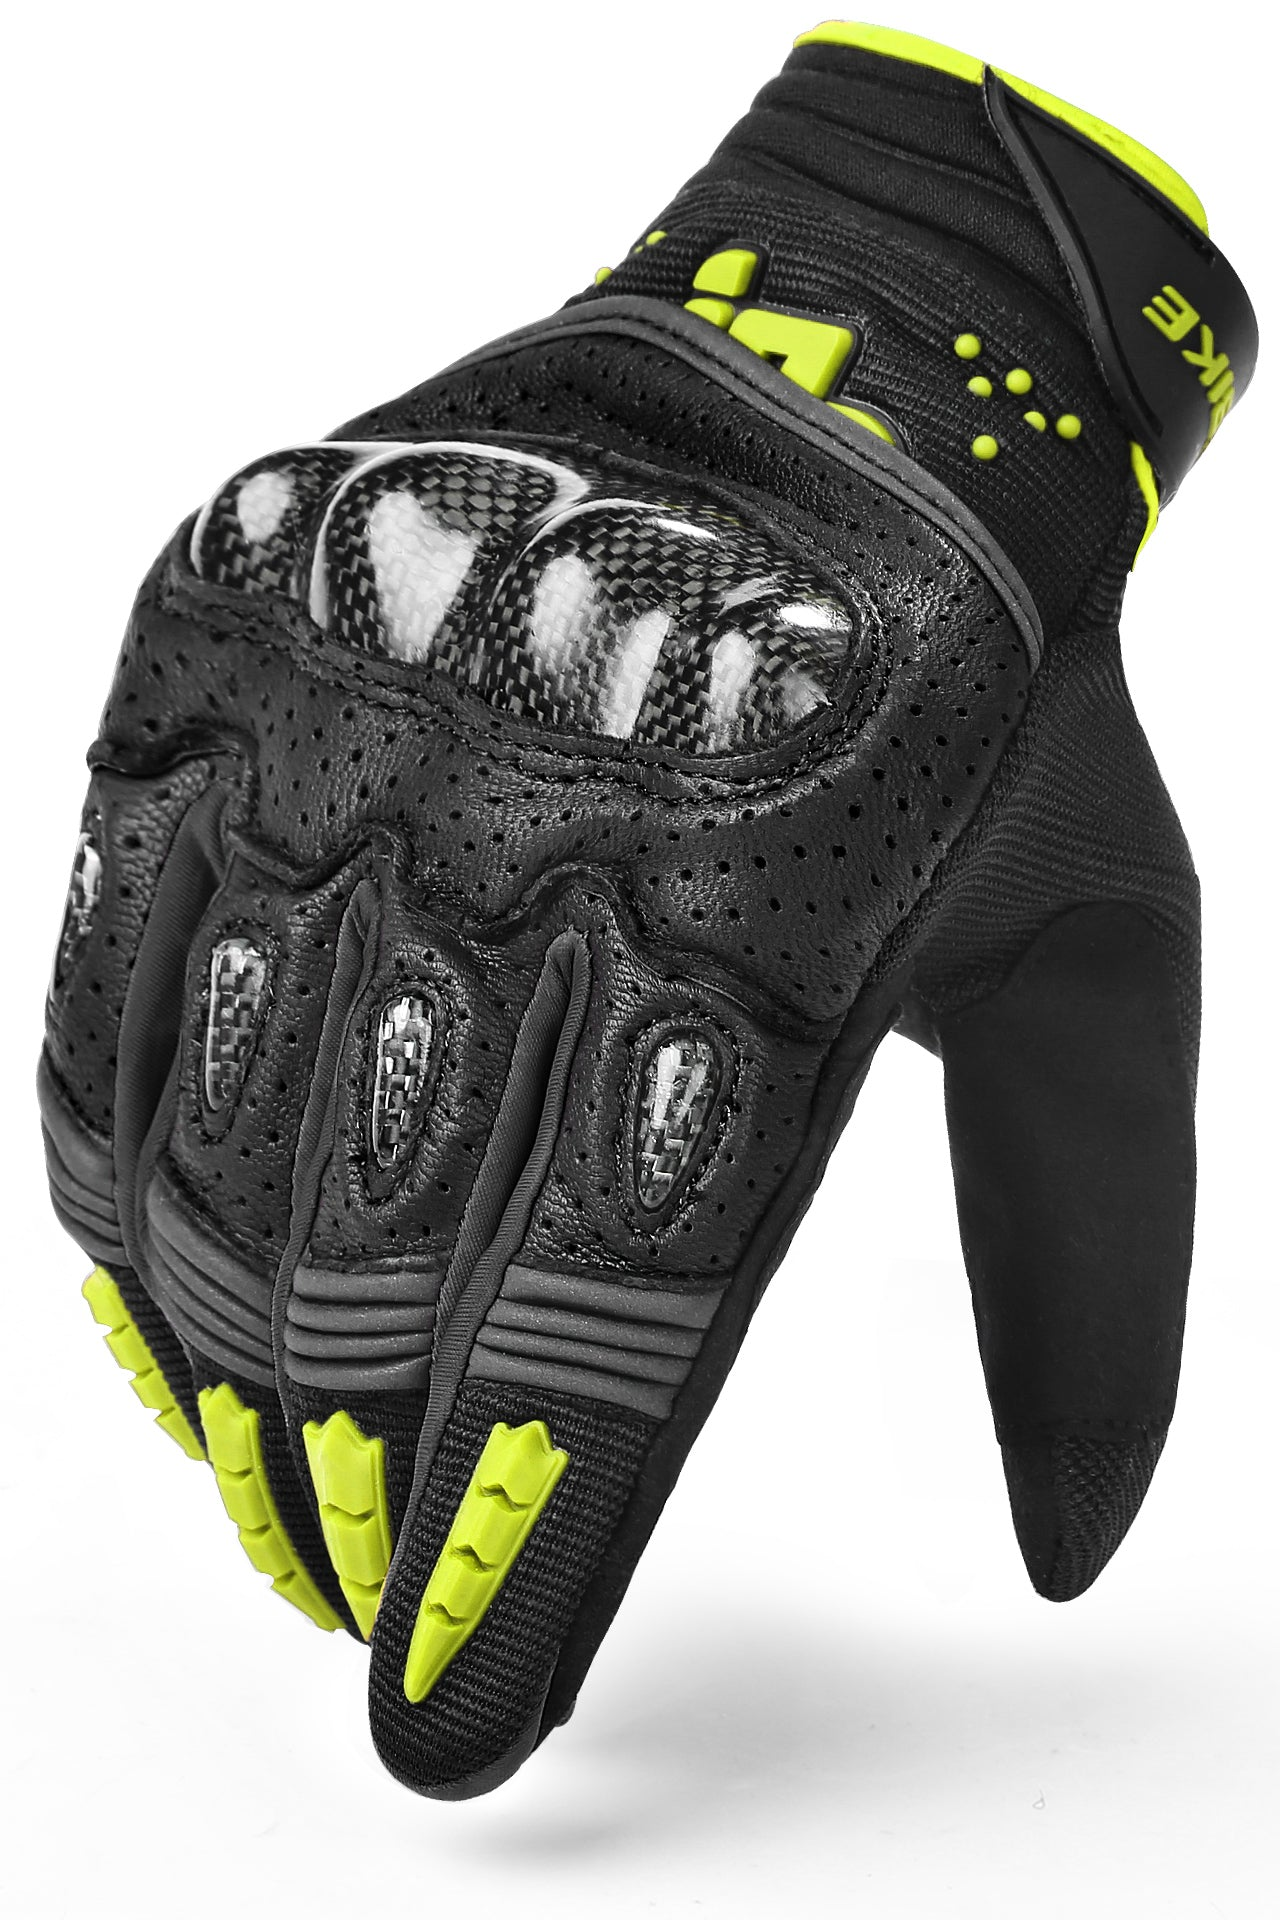 Urban & Cross Country Motorcycle Glove Green